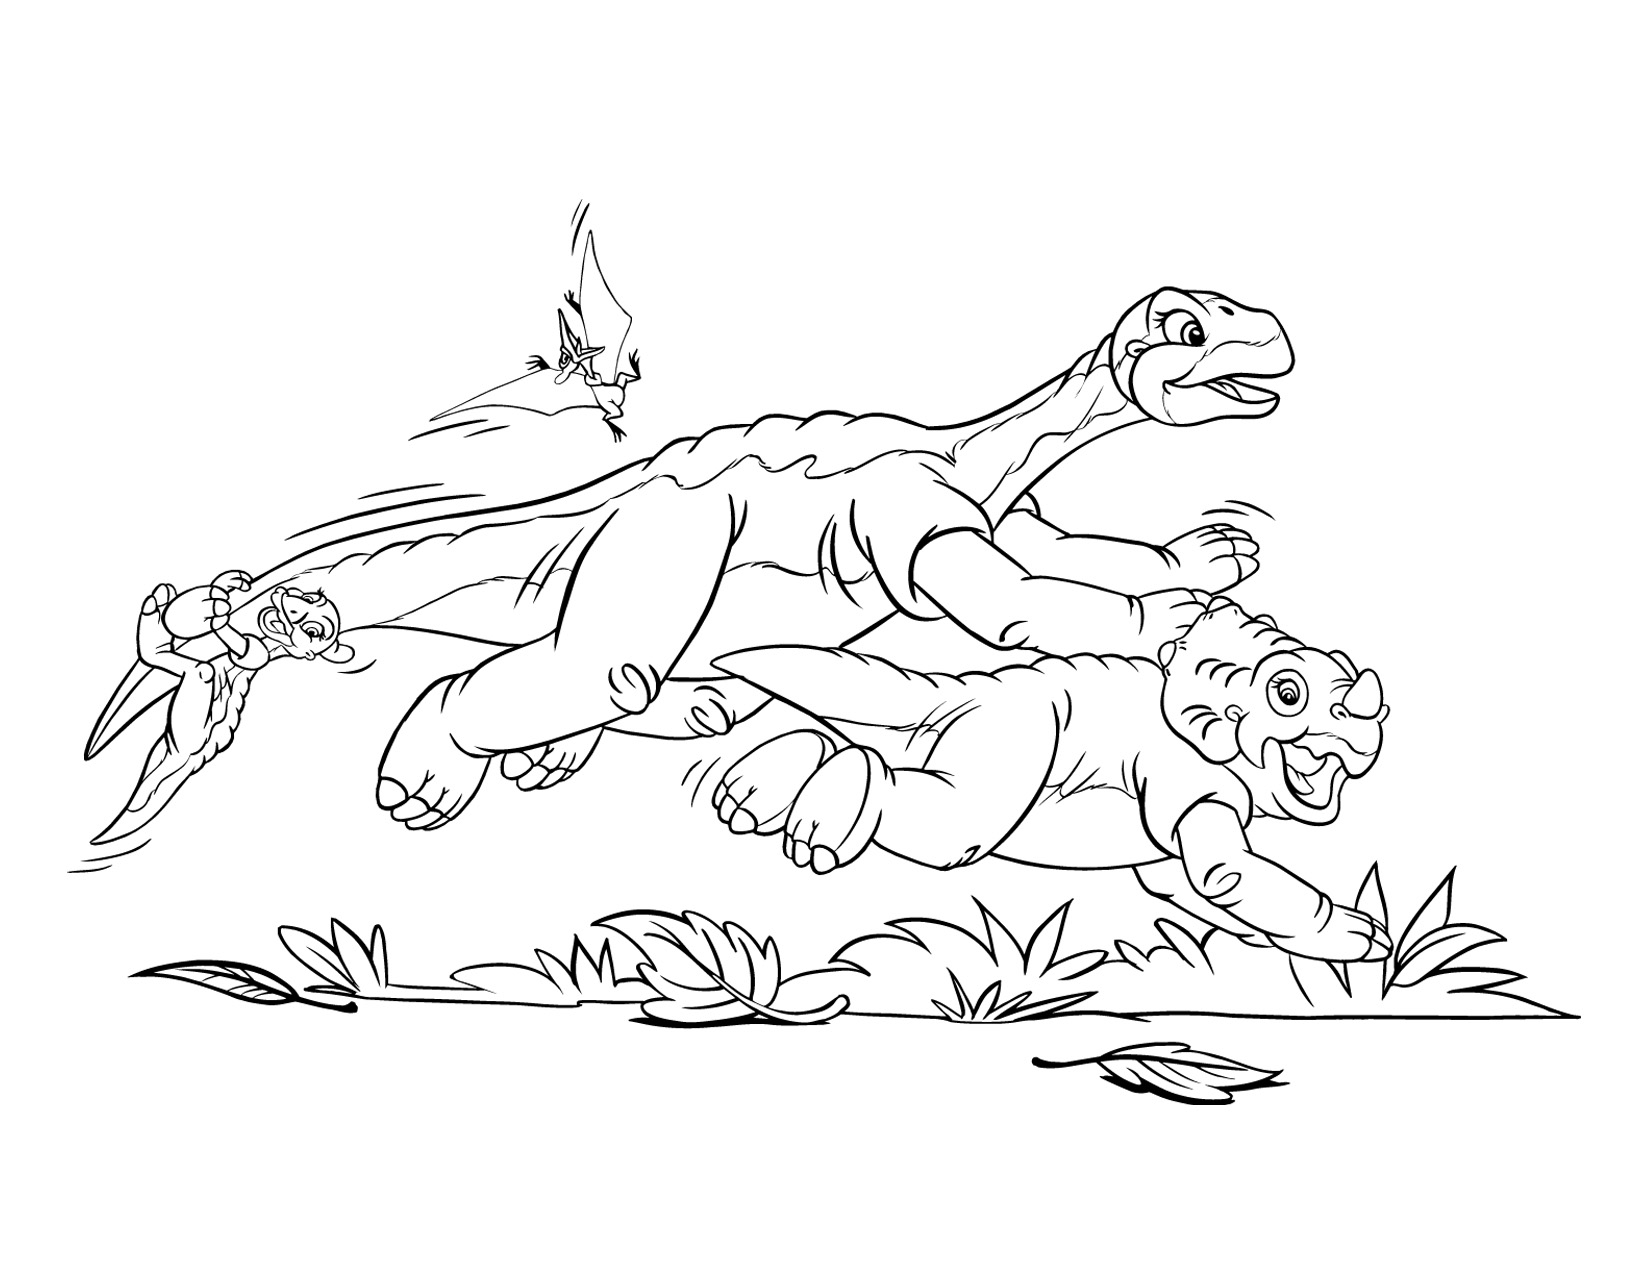 Coloring Pages The Land Before Time Coloring Pages lbt movie coloring pages land before time wiki fandom powered the v mysterious island page 1 5